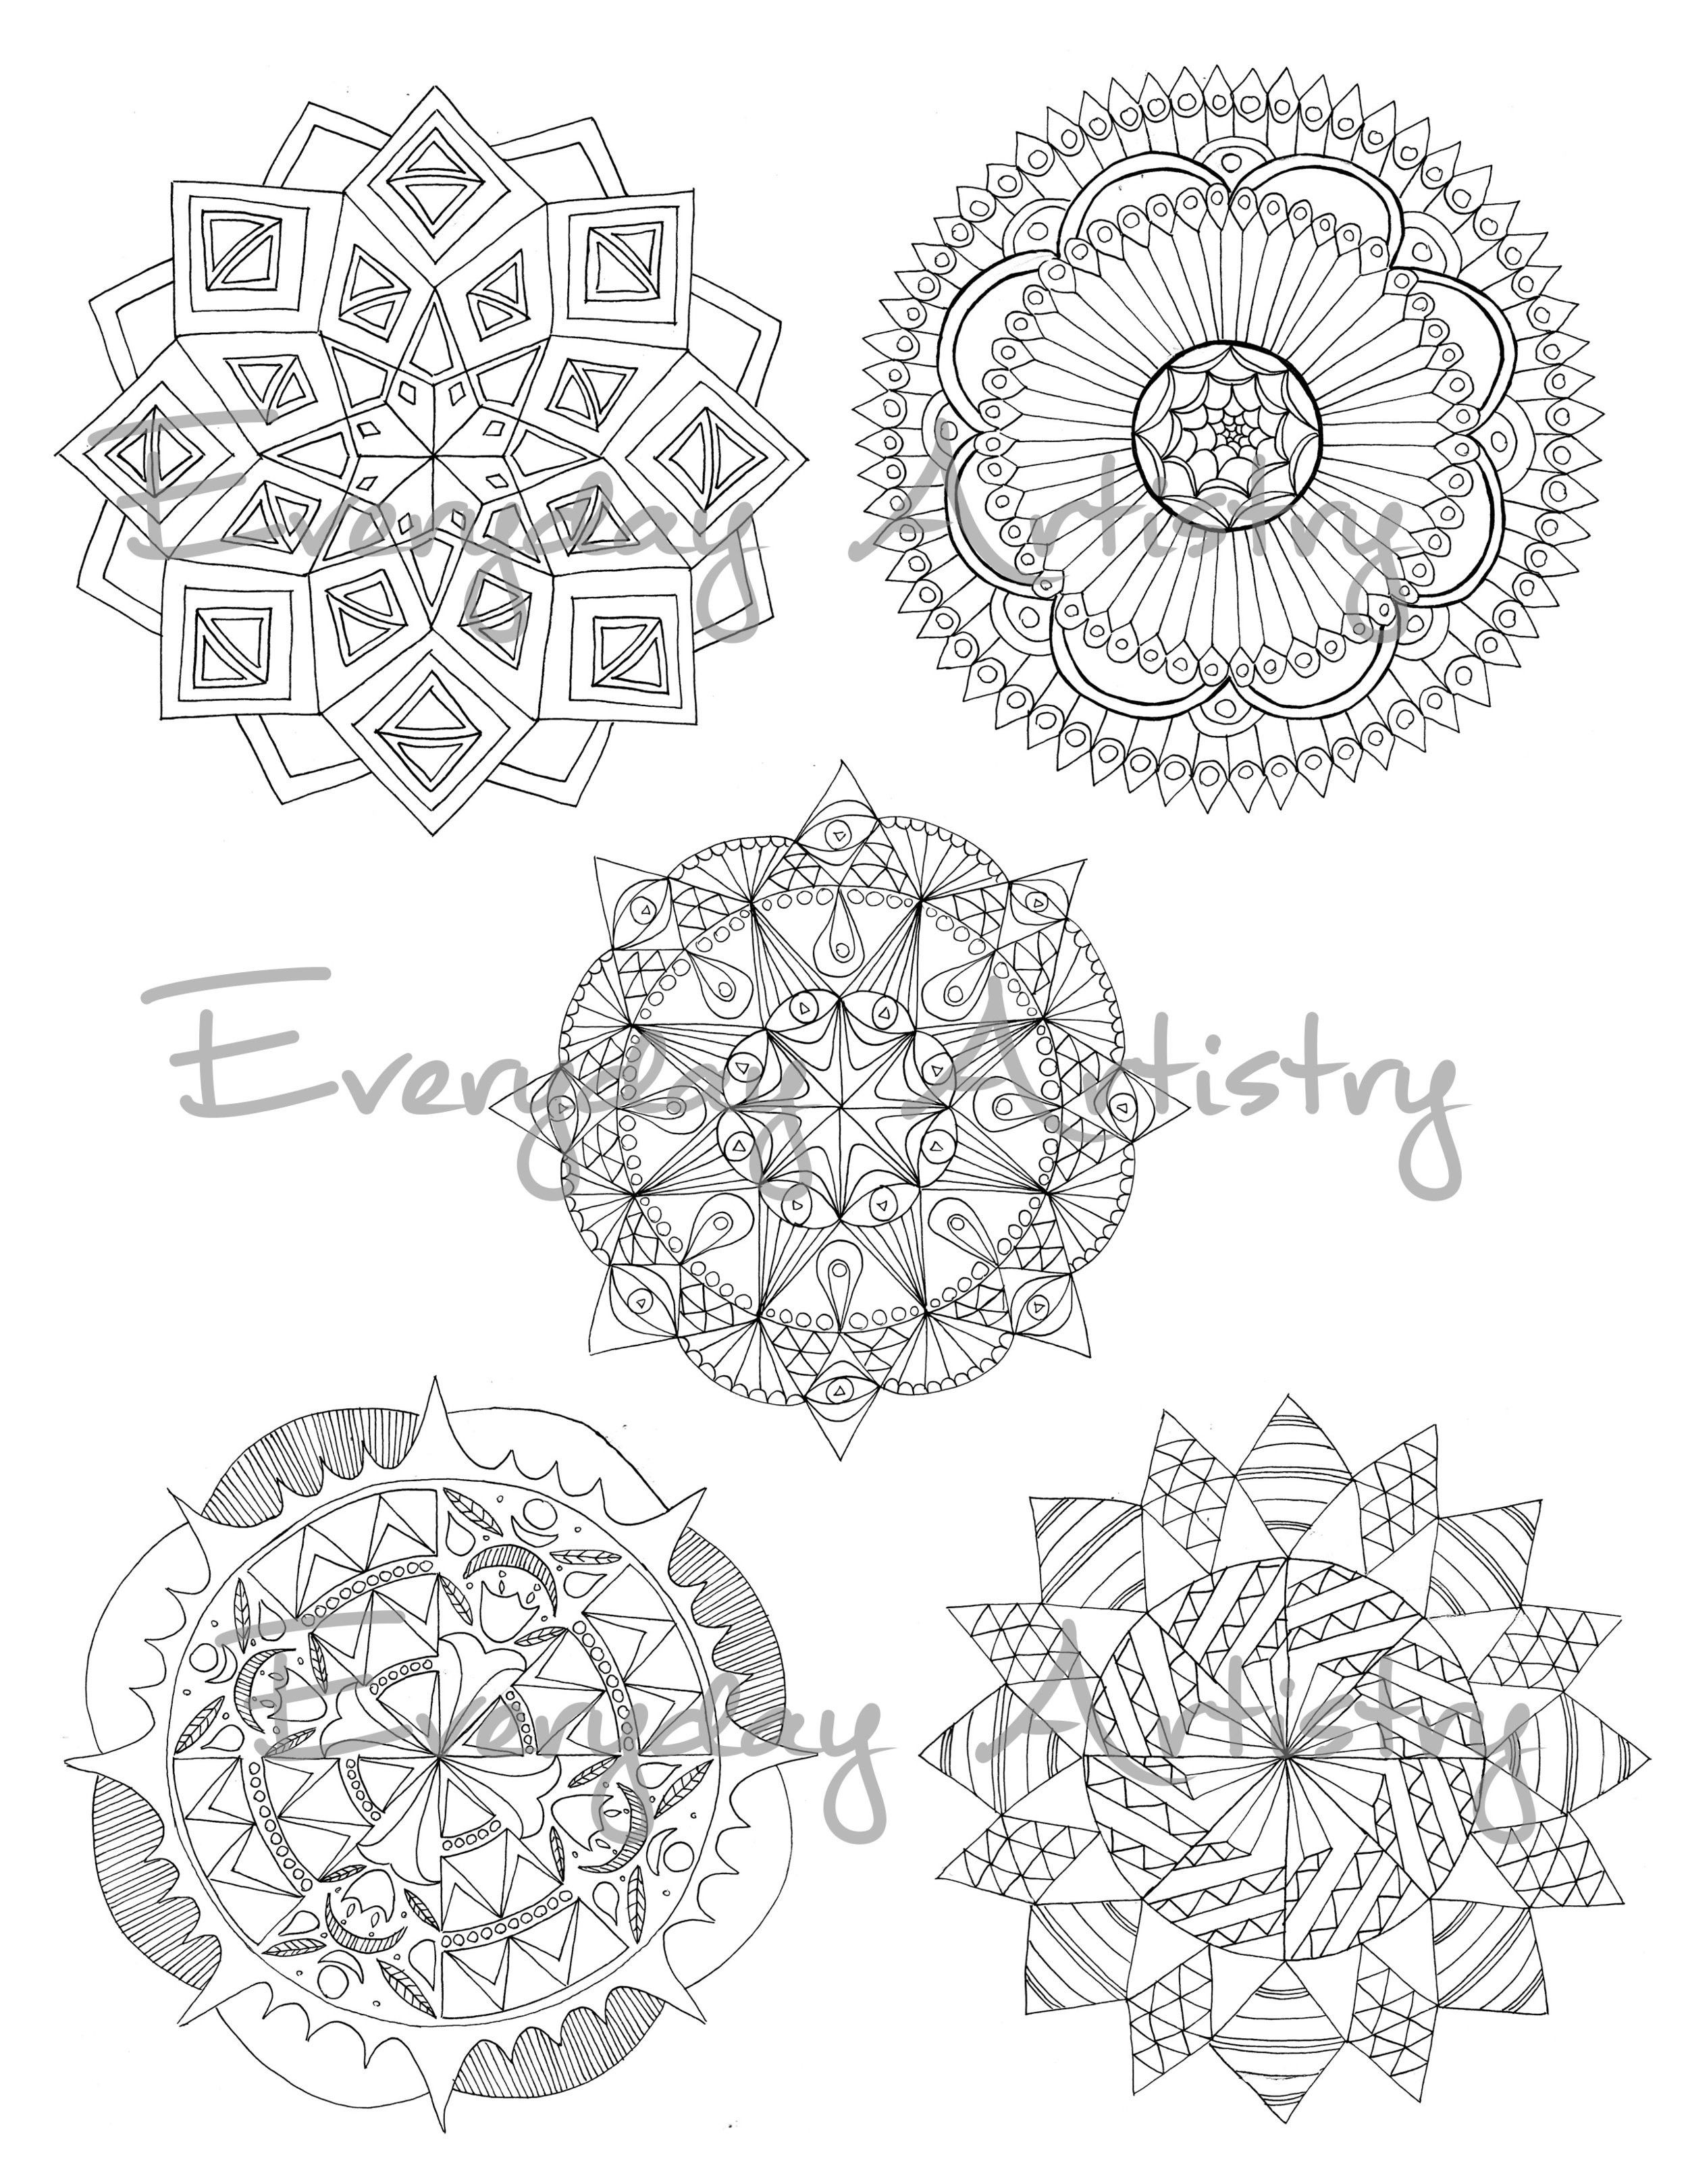 The five mandalas you can choose from